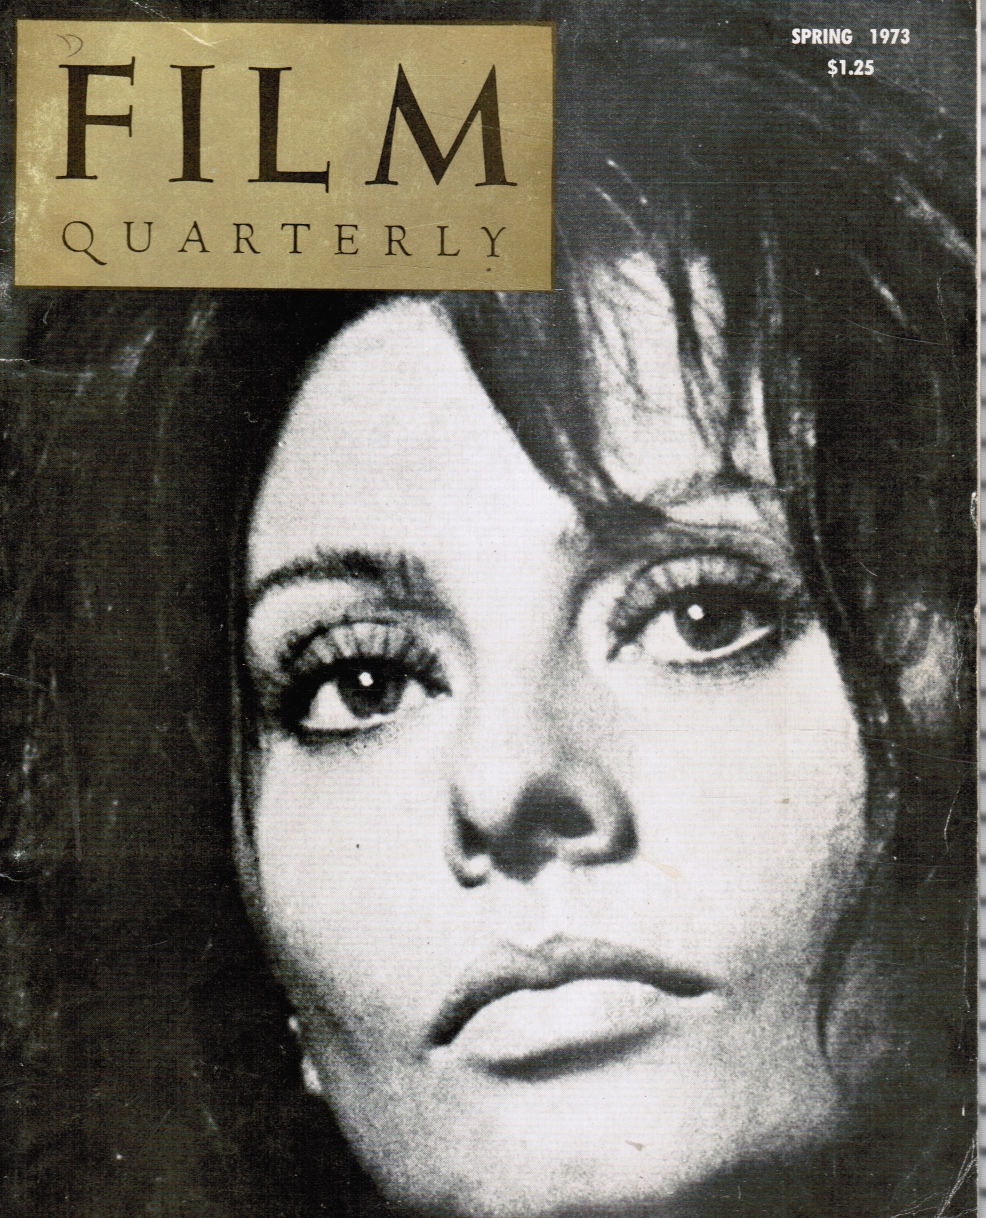 Image for Film Quarterly: Spring 1973 Sophia Loren, Cover